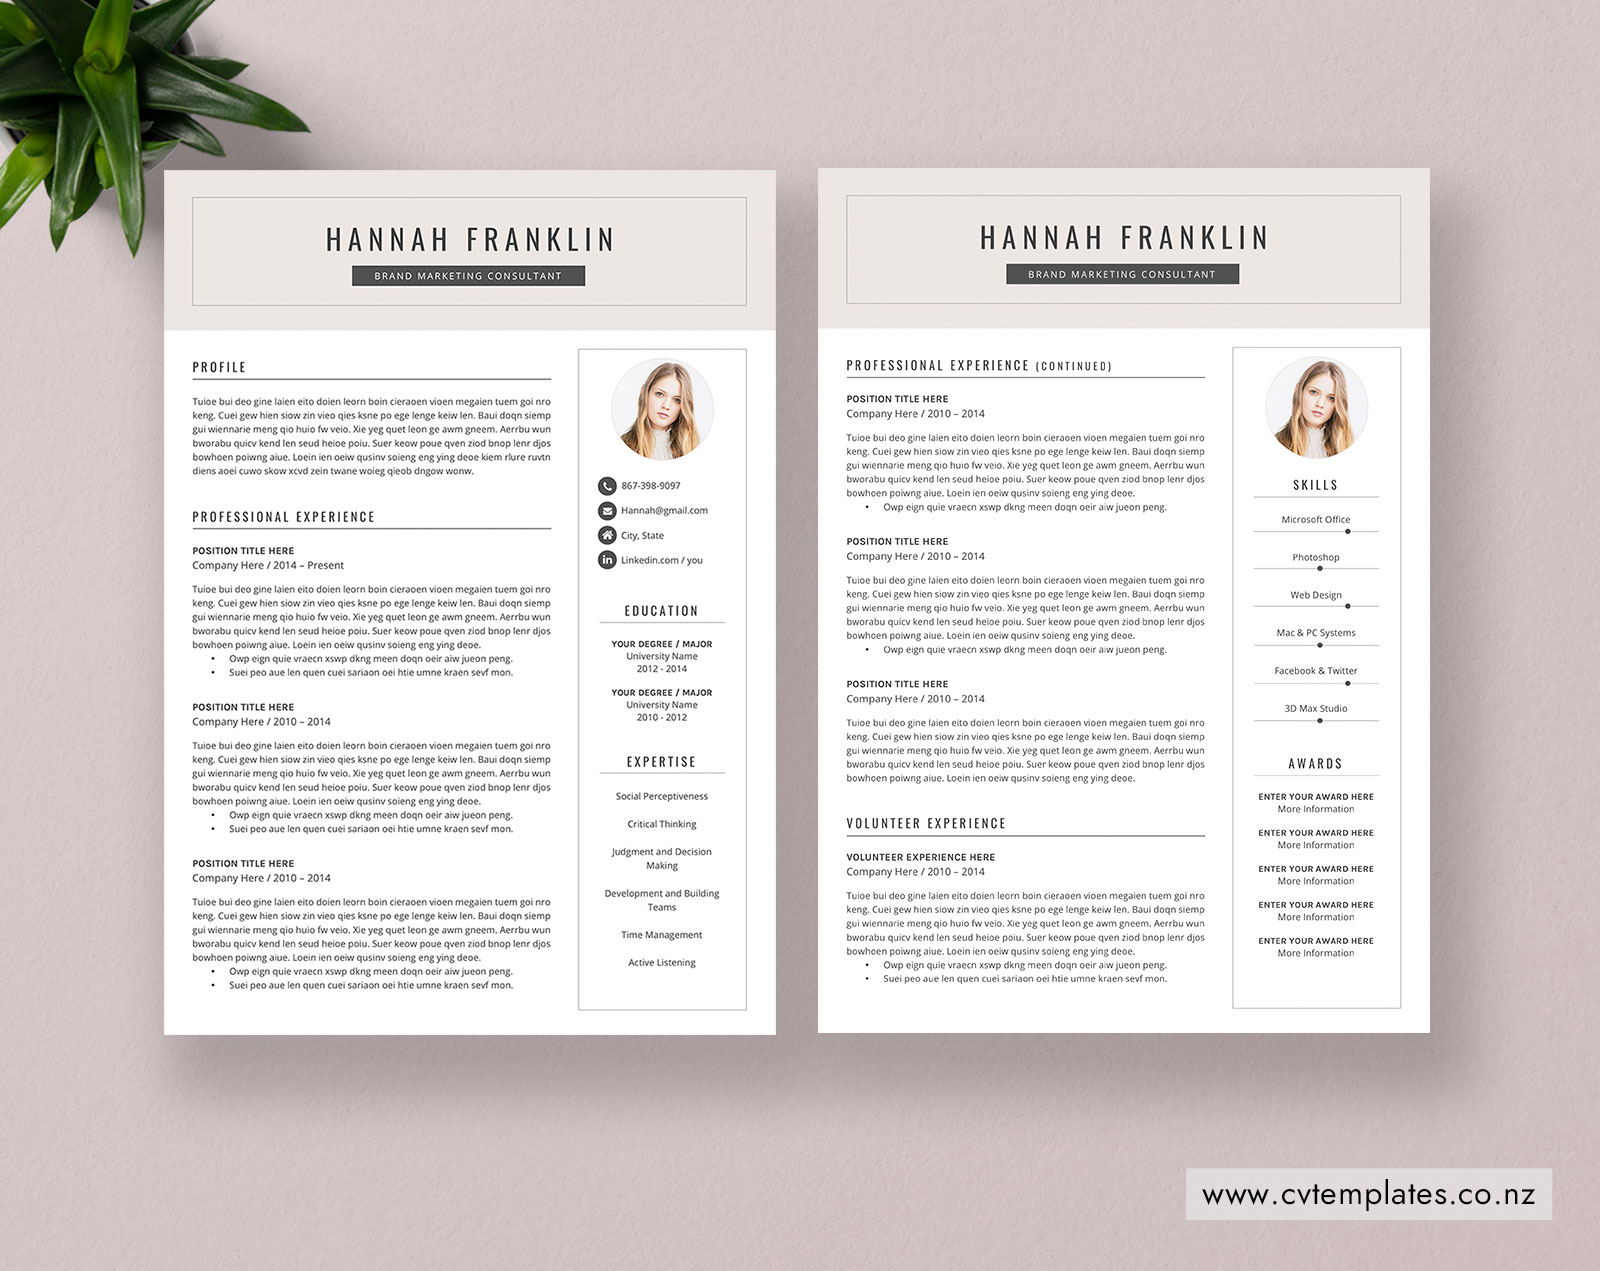 Massey University Cv Templates Creating Your 2020 Professional New Zealand Curriculum Vitae For Internship And Job Opportunities For Massey University Students And Graduates Cvtemplates Co Nz